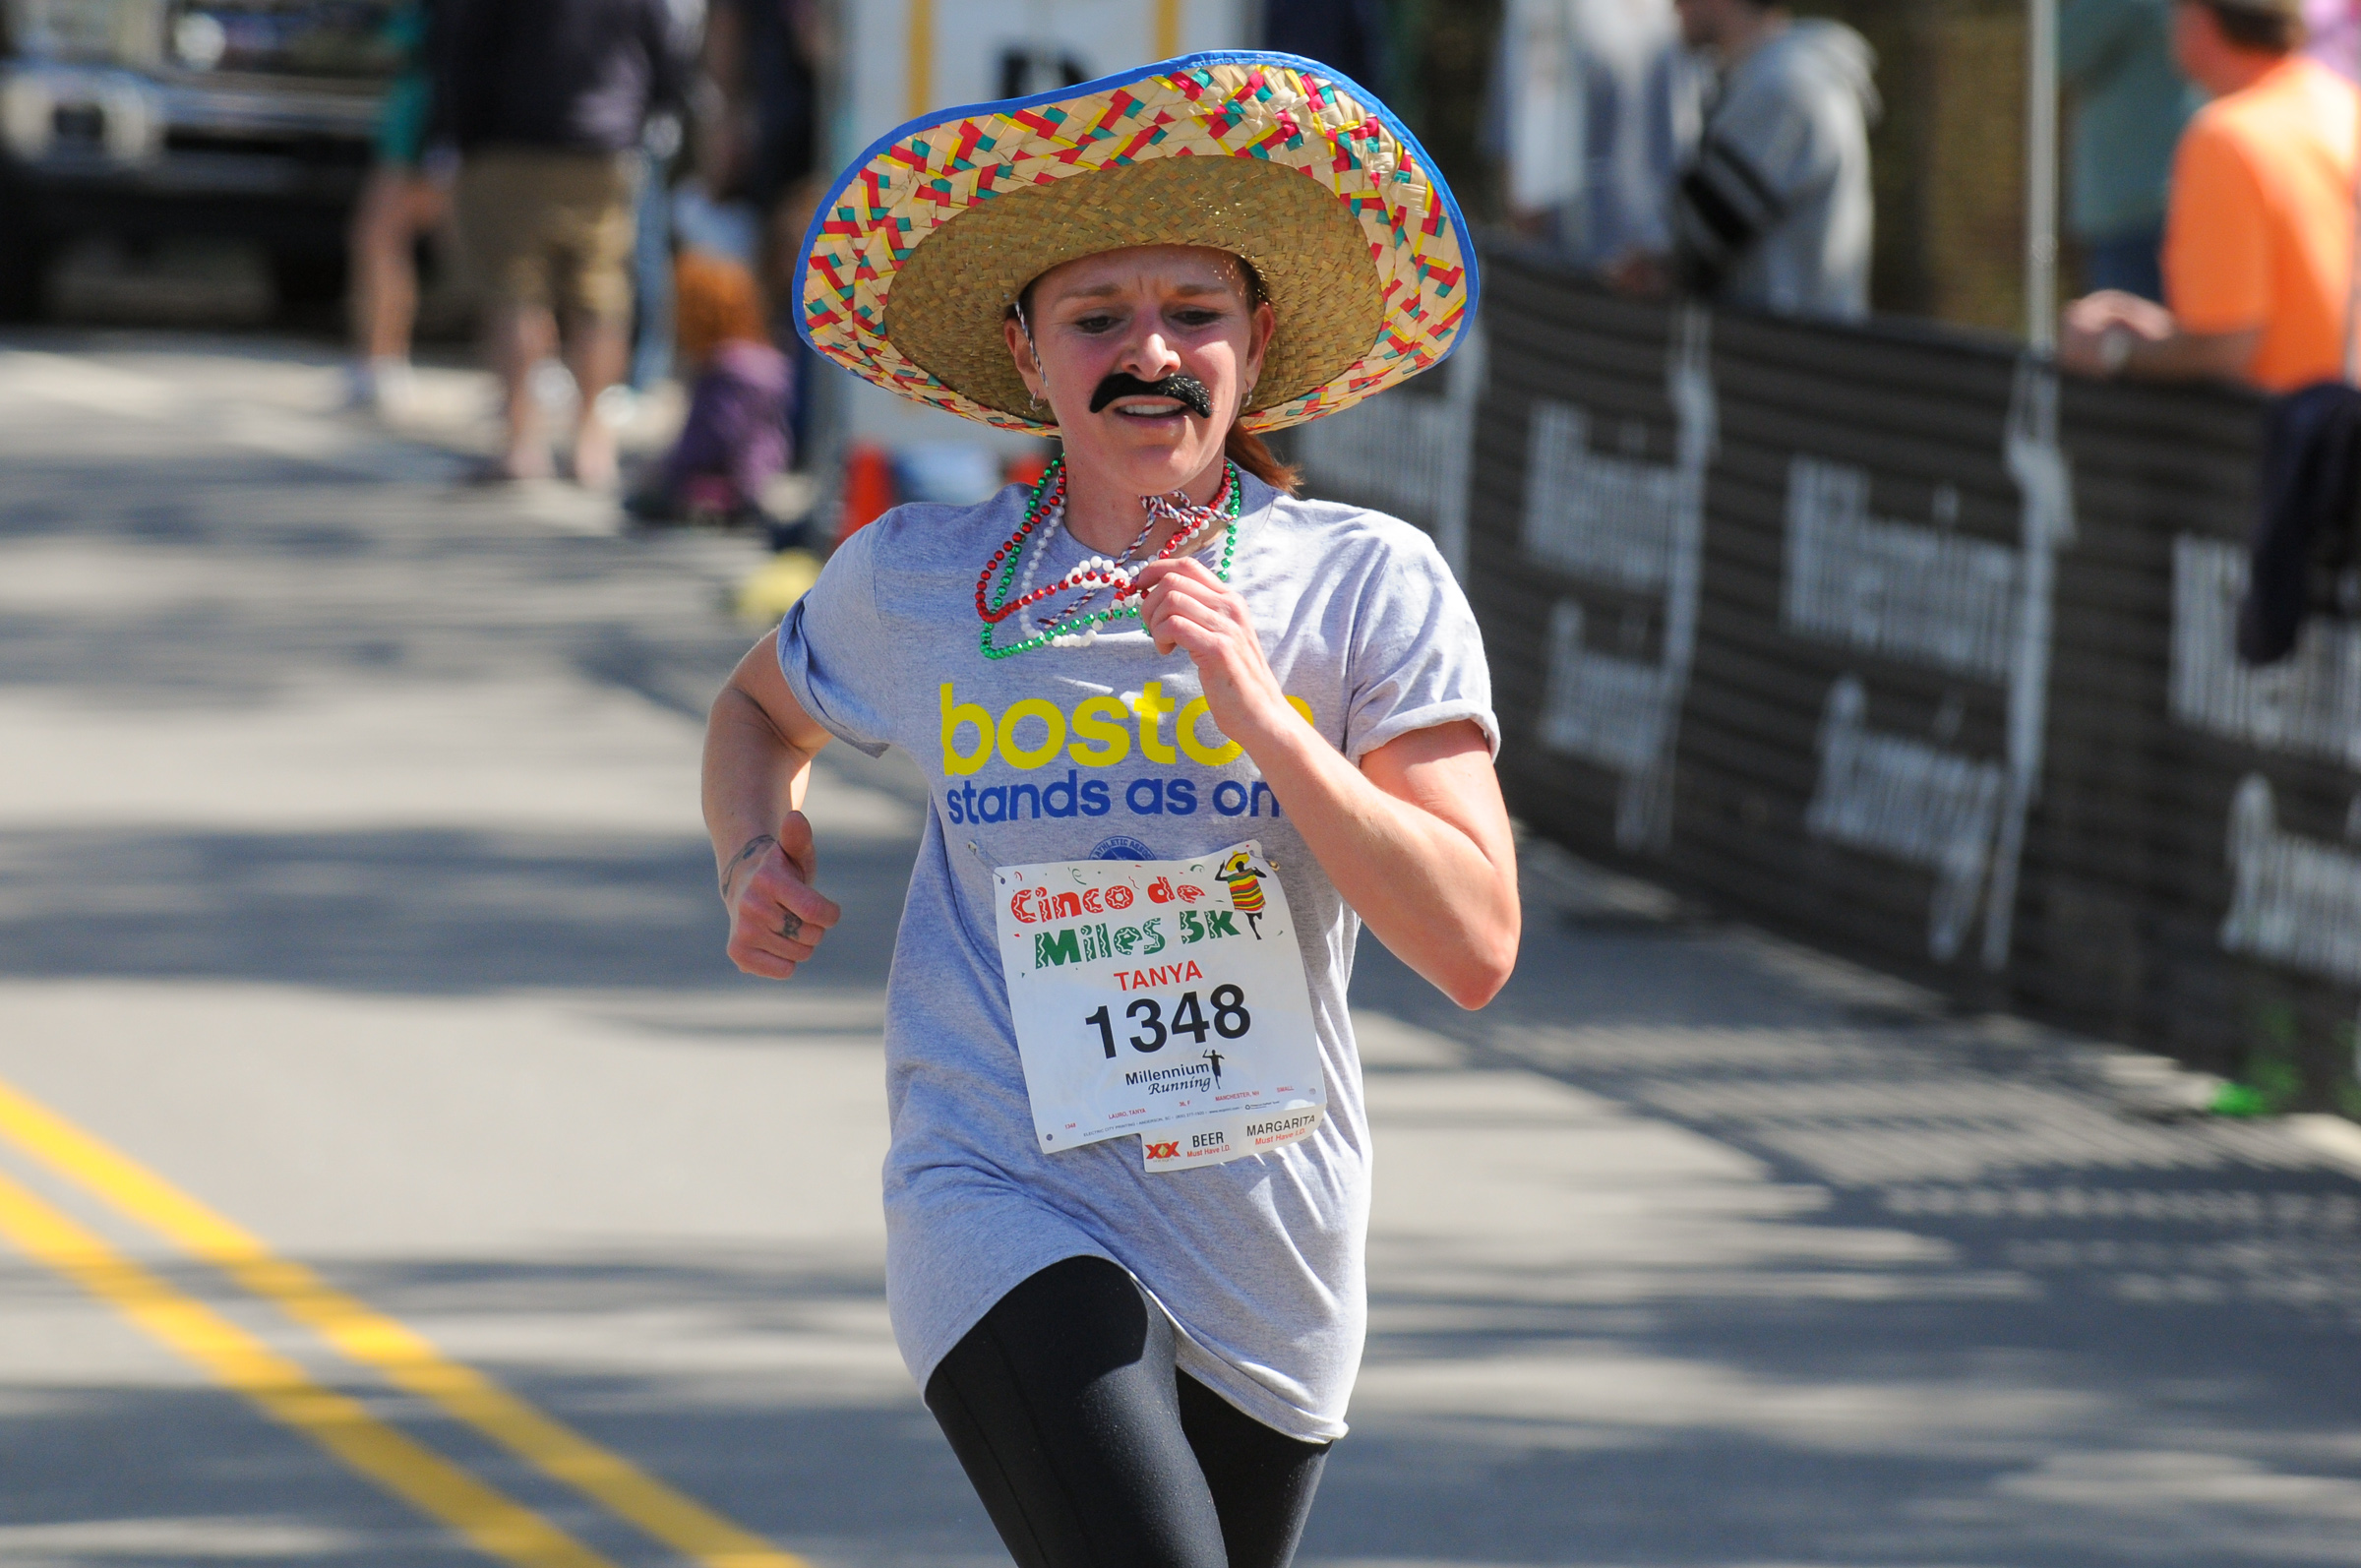 RESULTS: Cinco de Miles 5K 2014